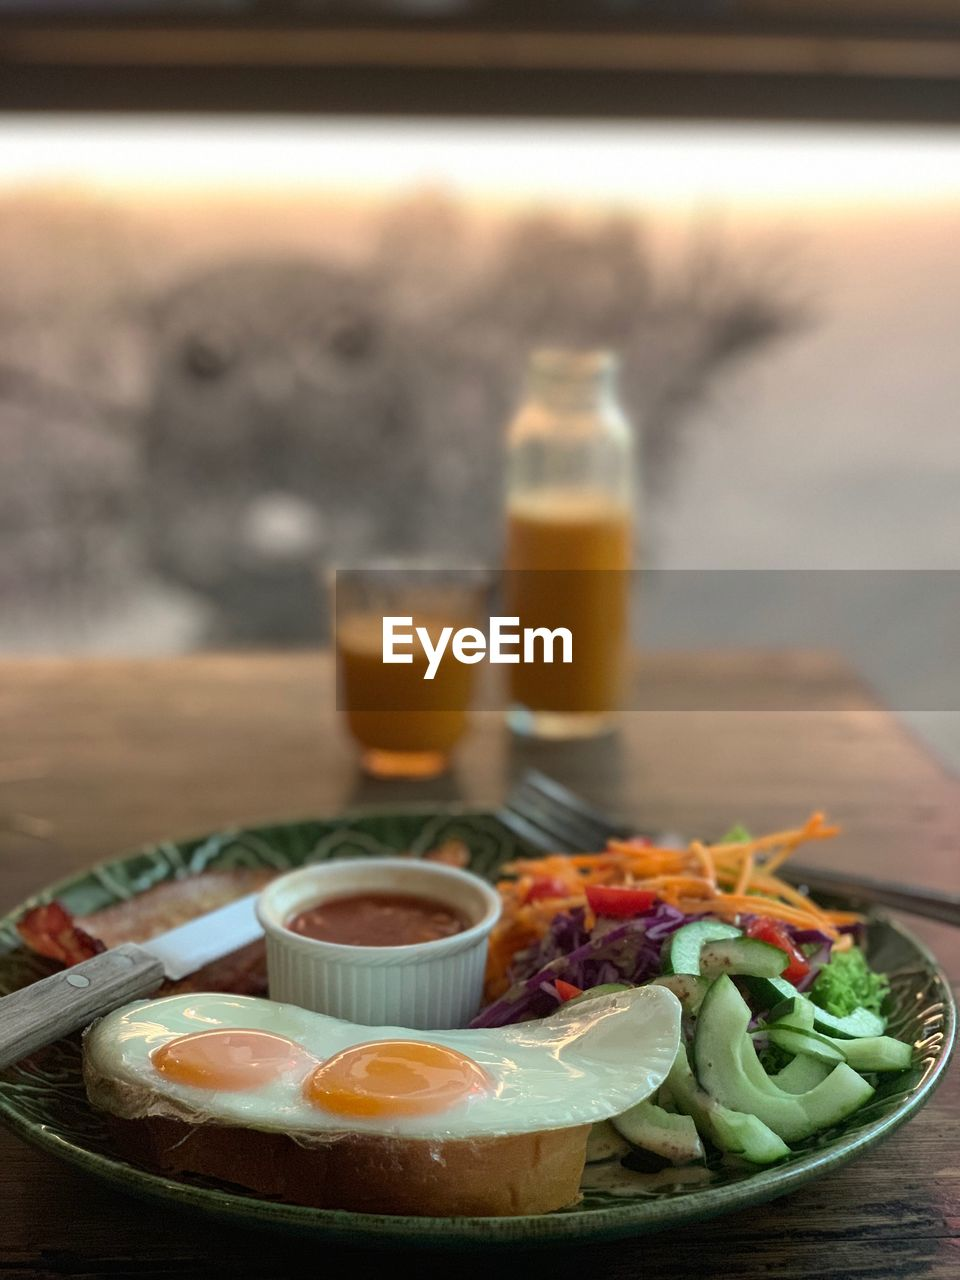 food and drink, food, healthy eating, freshness, table, wellbeing, indoors, no people, plate, drink, ready-to-eat, still life, focus on foreground, close-up, serving size, refreshment, egg, vegetable, meal, selective focus, glass, breakfast